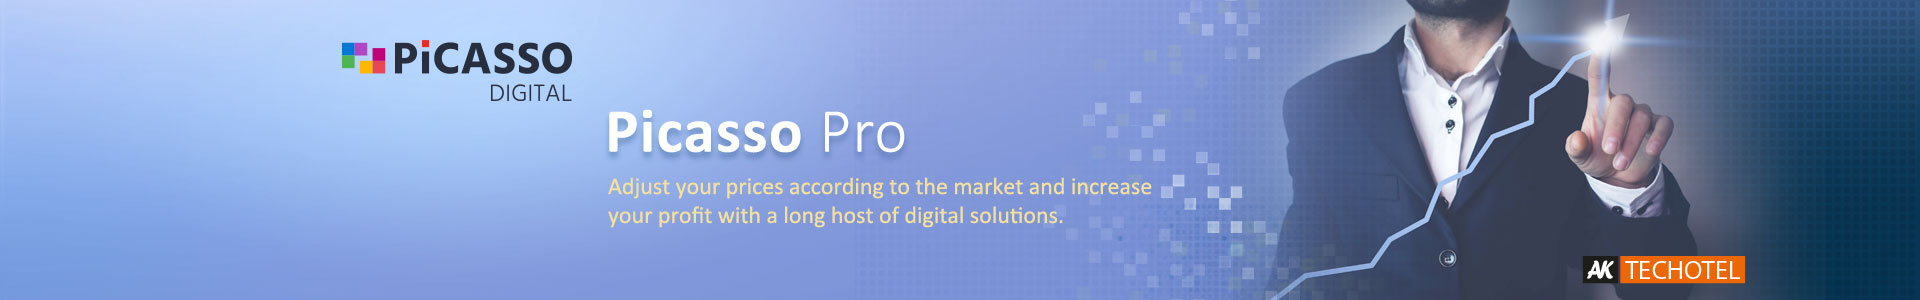 Products-banner-uk-1920x300px-05